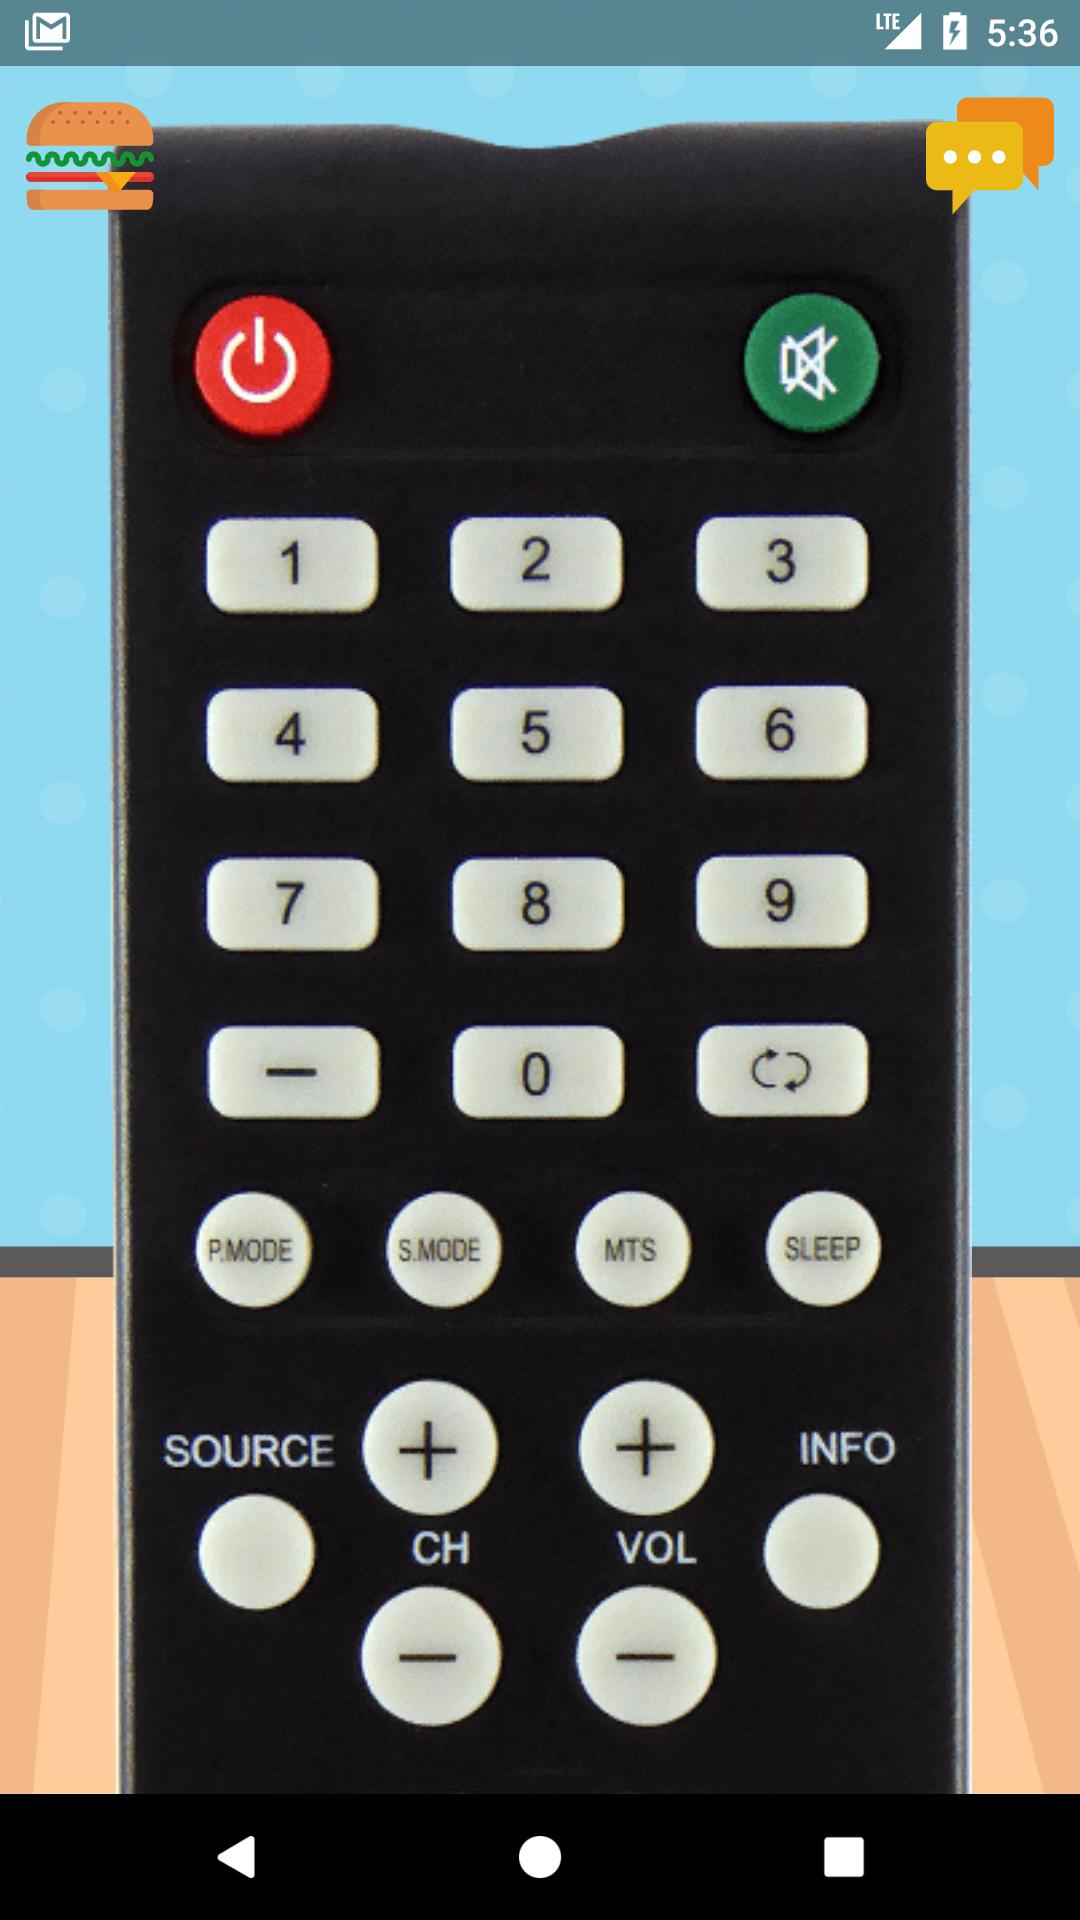 Remote Control For Element TV for Android - APK Download